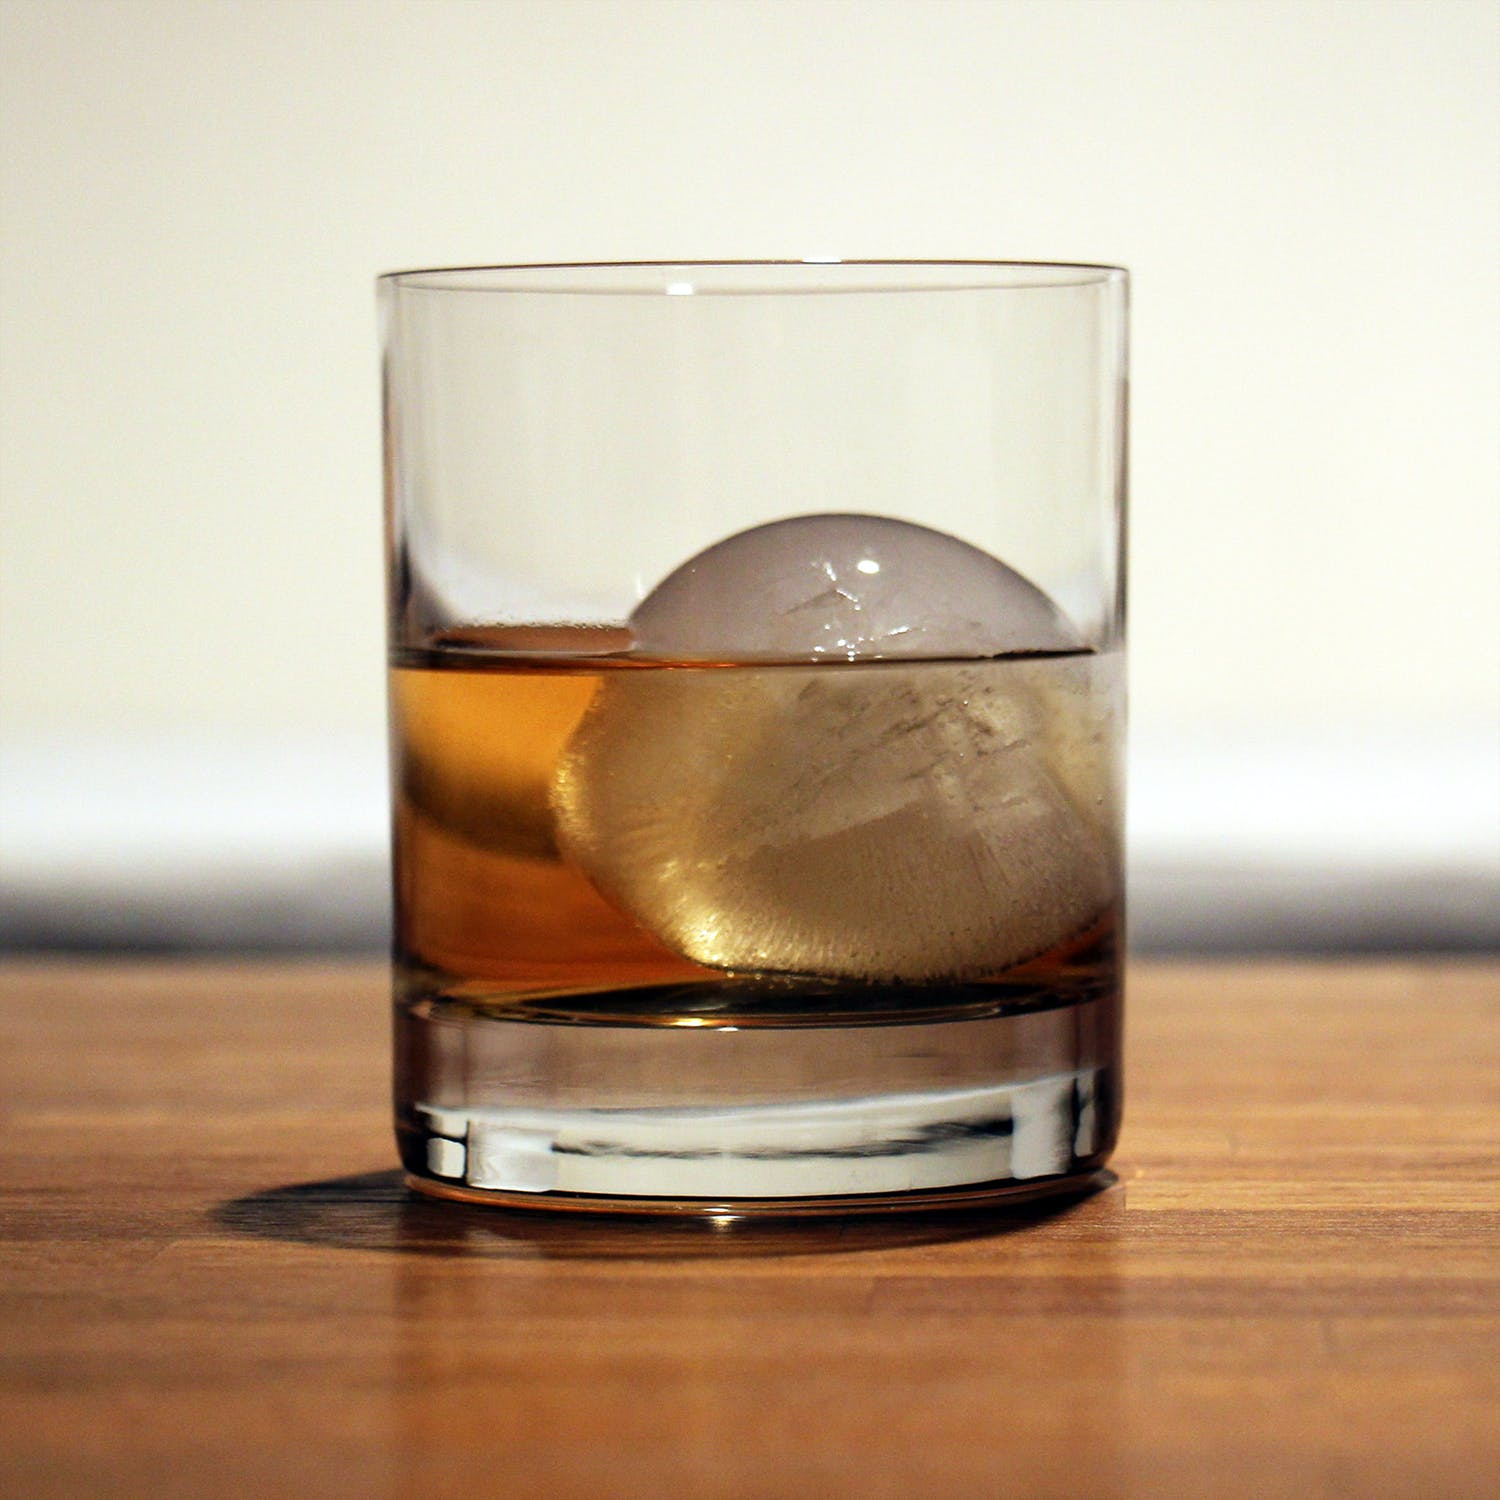 Titanium Pro Double Old Fashioned Glass (Master Carton of 24) - sold by Ravenscroft Crystal